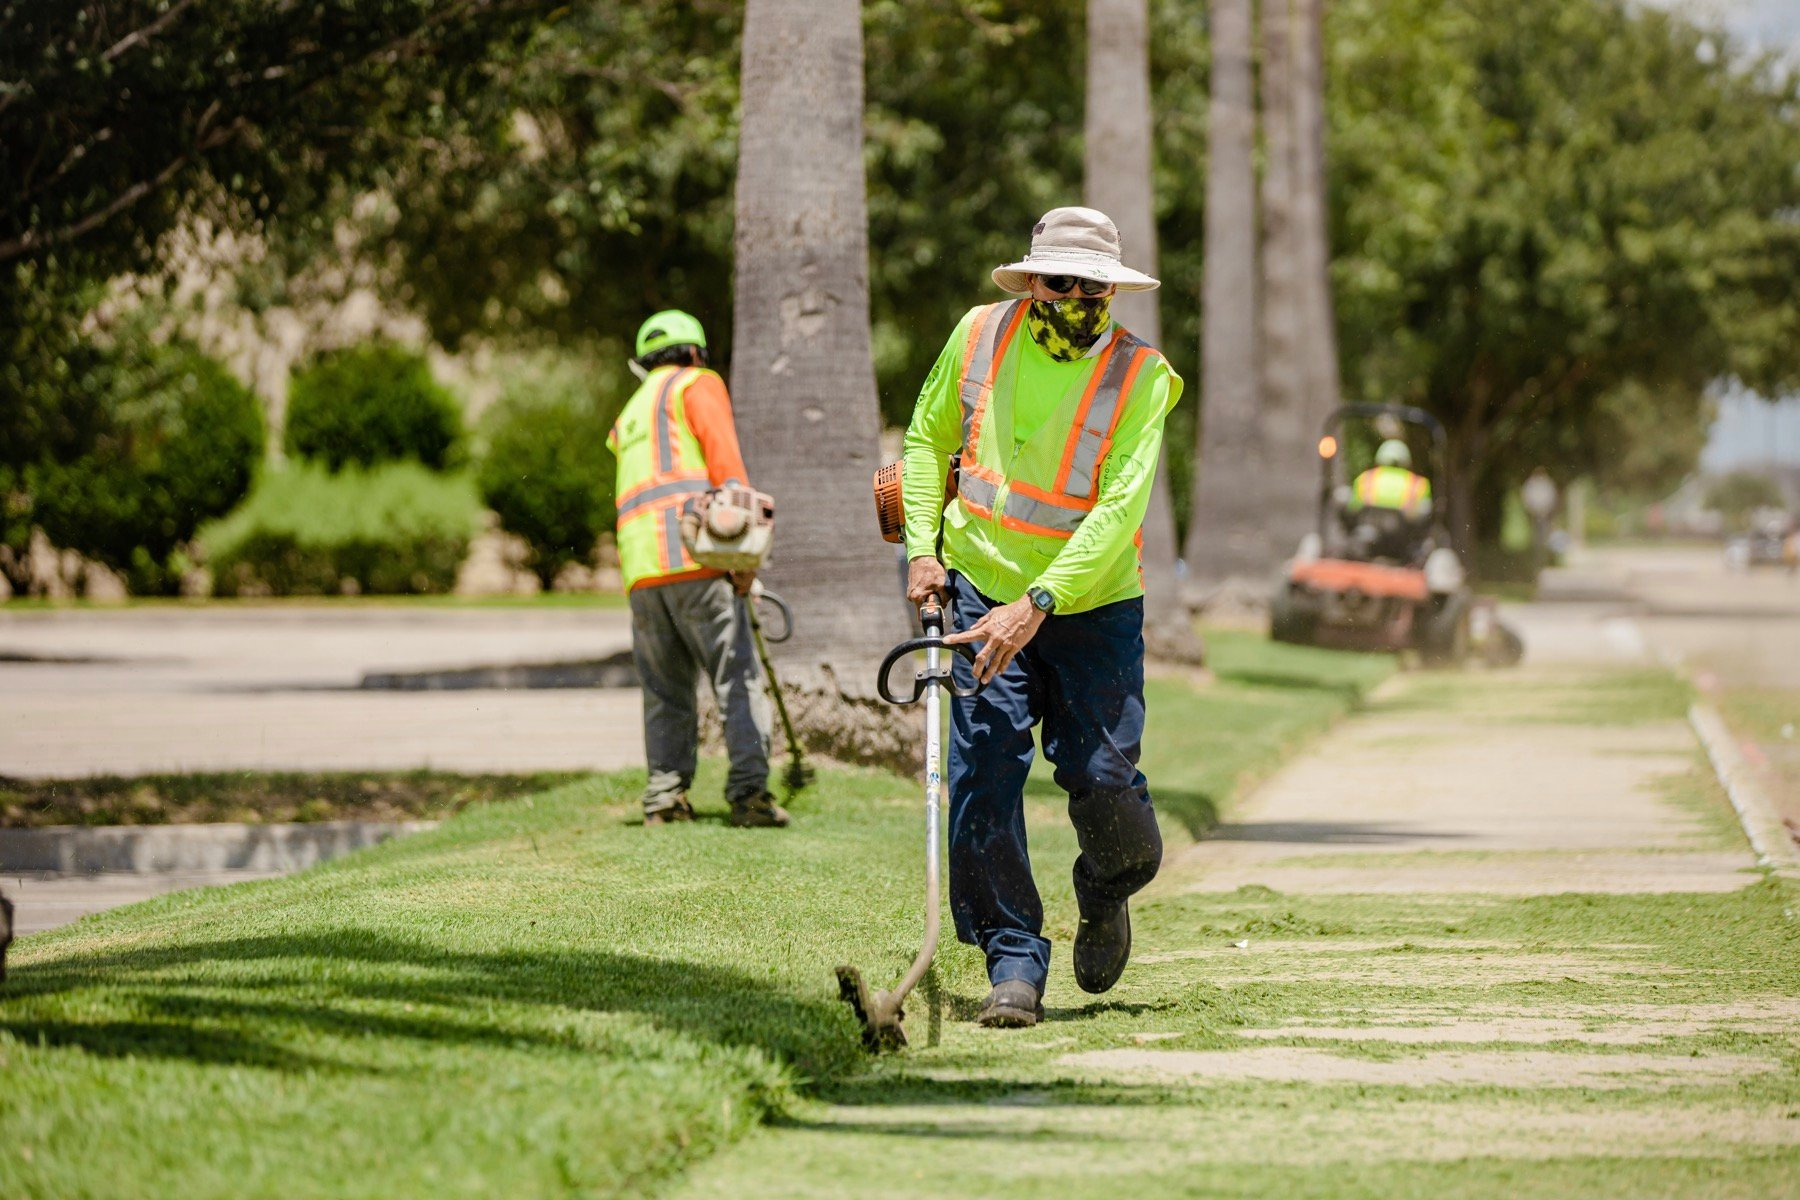 Commercial lawn care crew edging a sidewalk